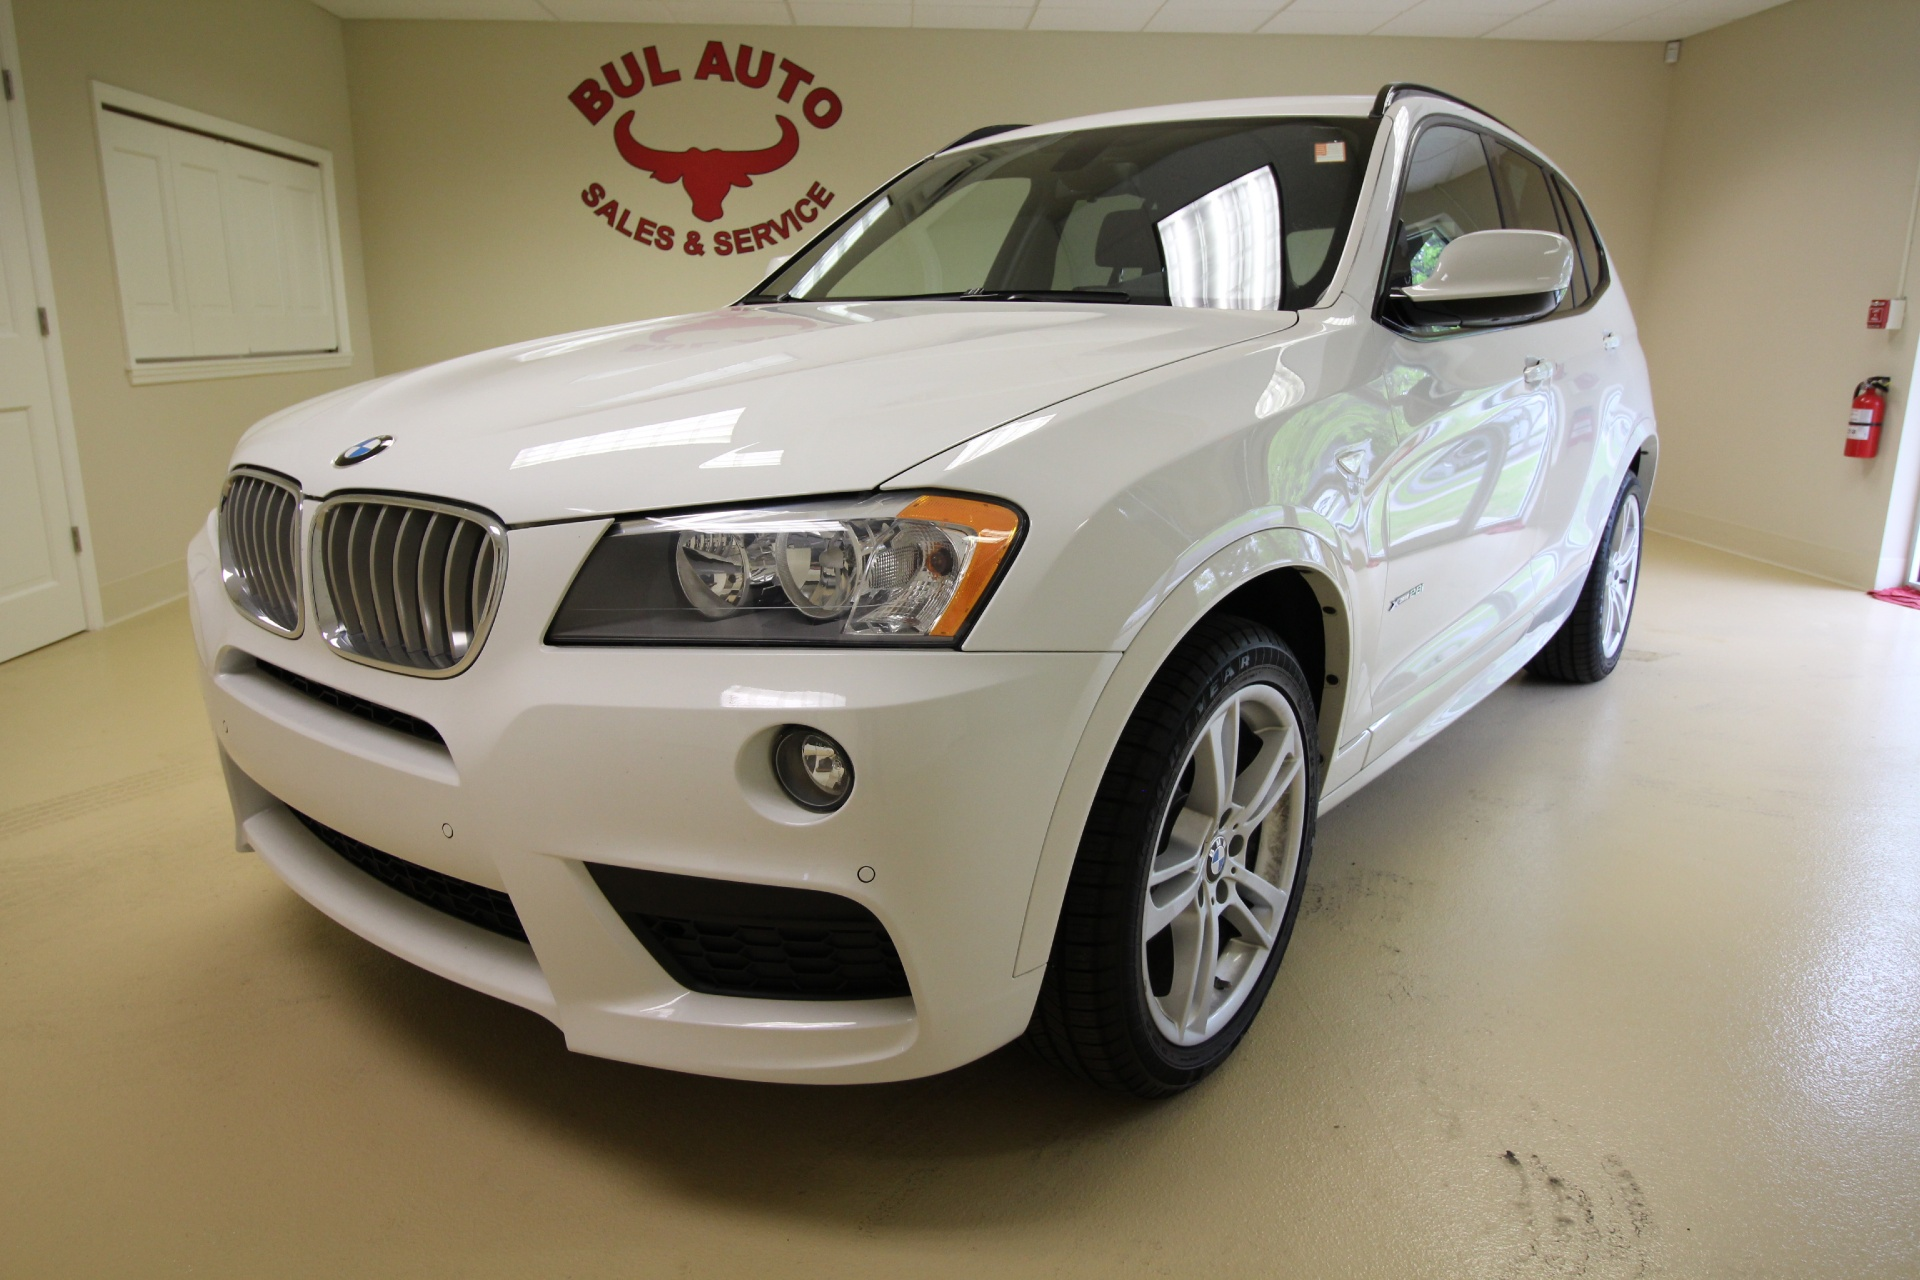 2014 bmw x3 xdrive28i msport loaded navigation stock 16014 for sale near albany ny ny bmw. Black Bedroom Furniture Sets. Home Design Ideas